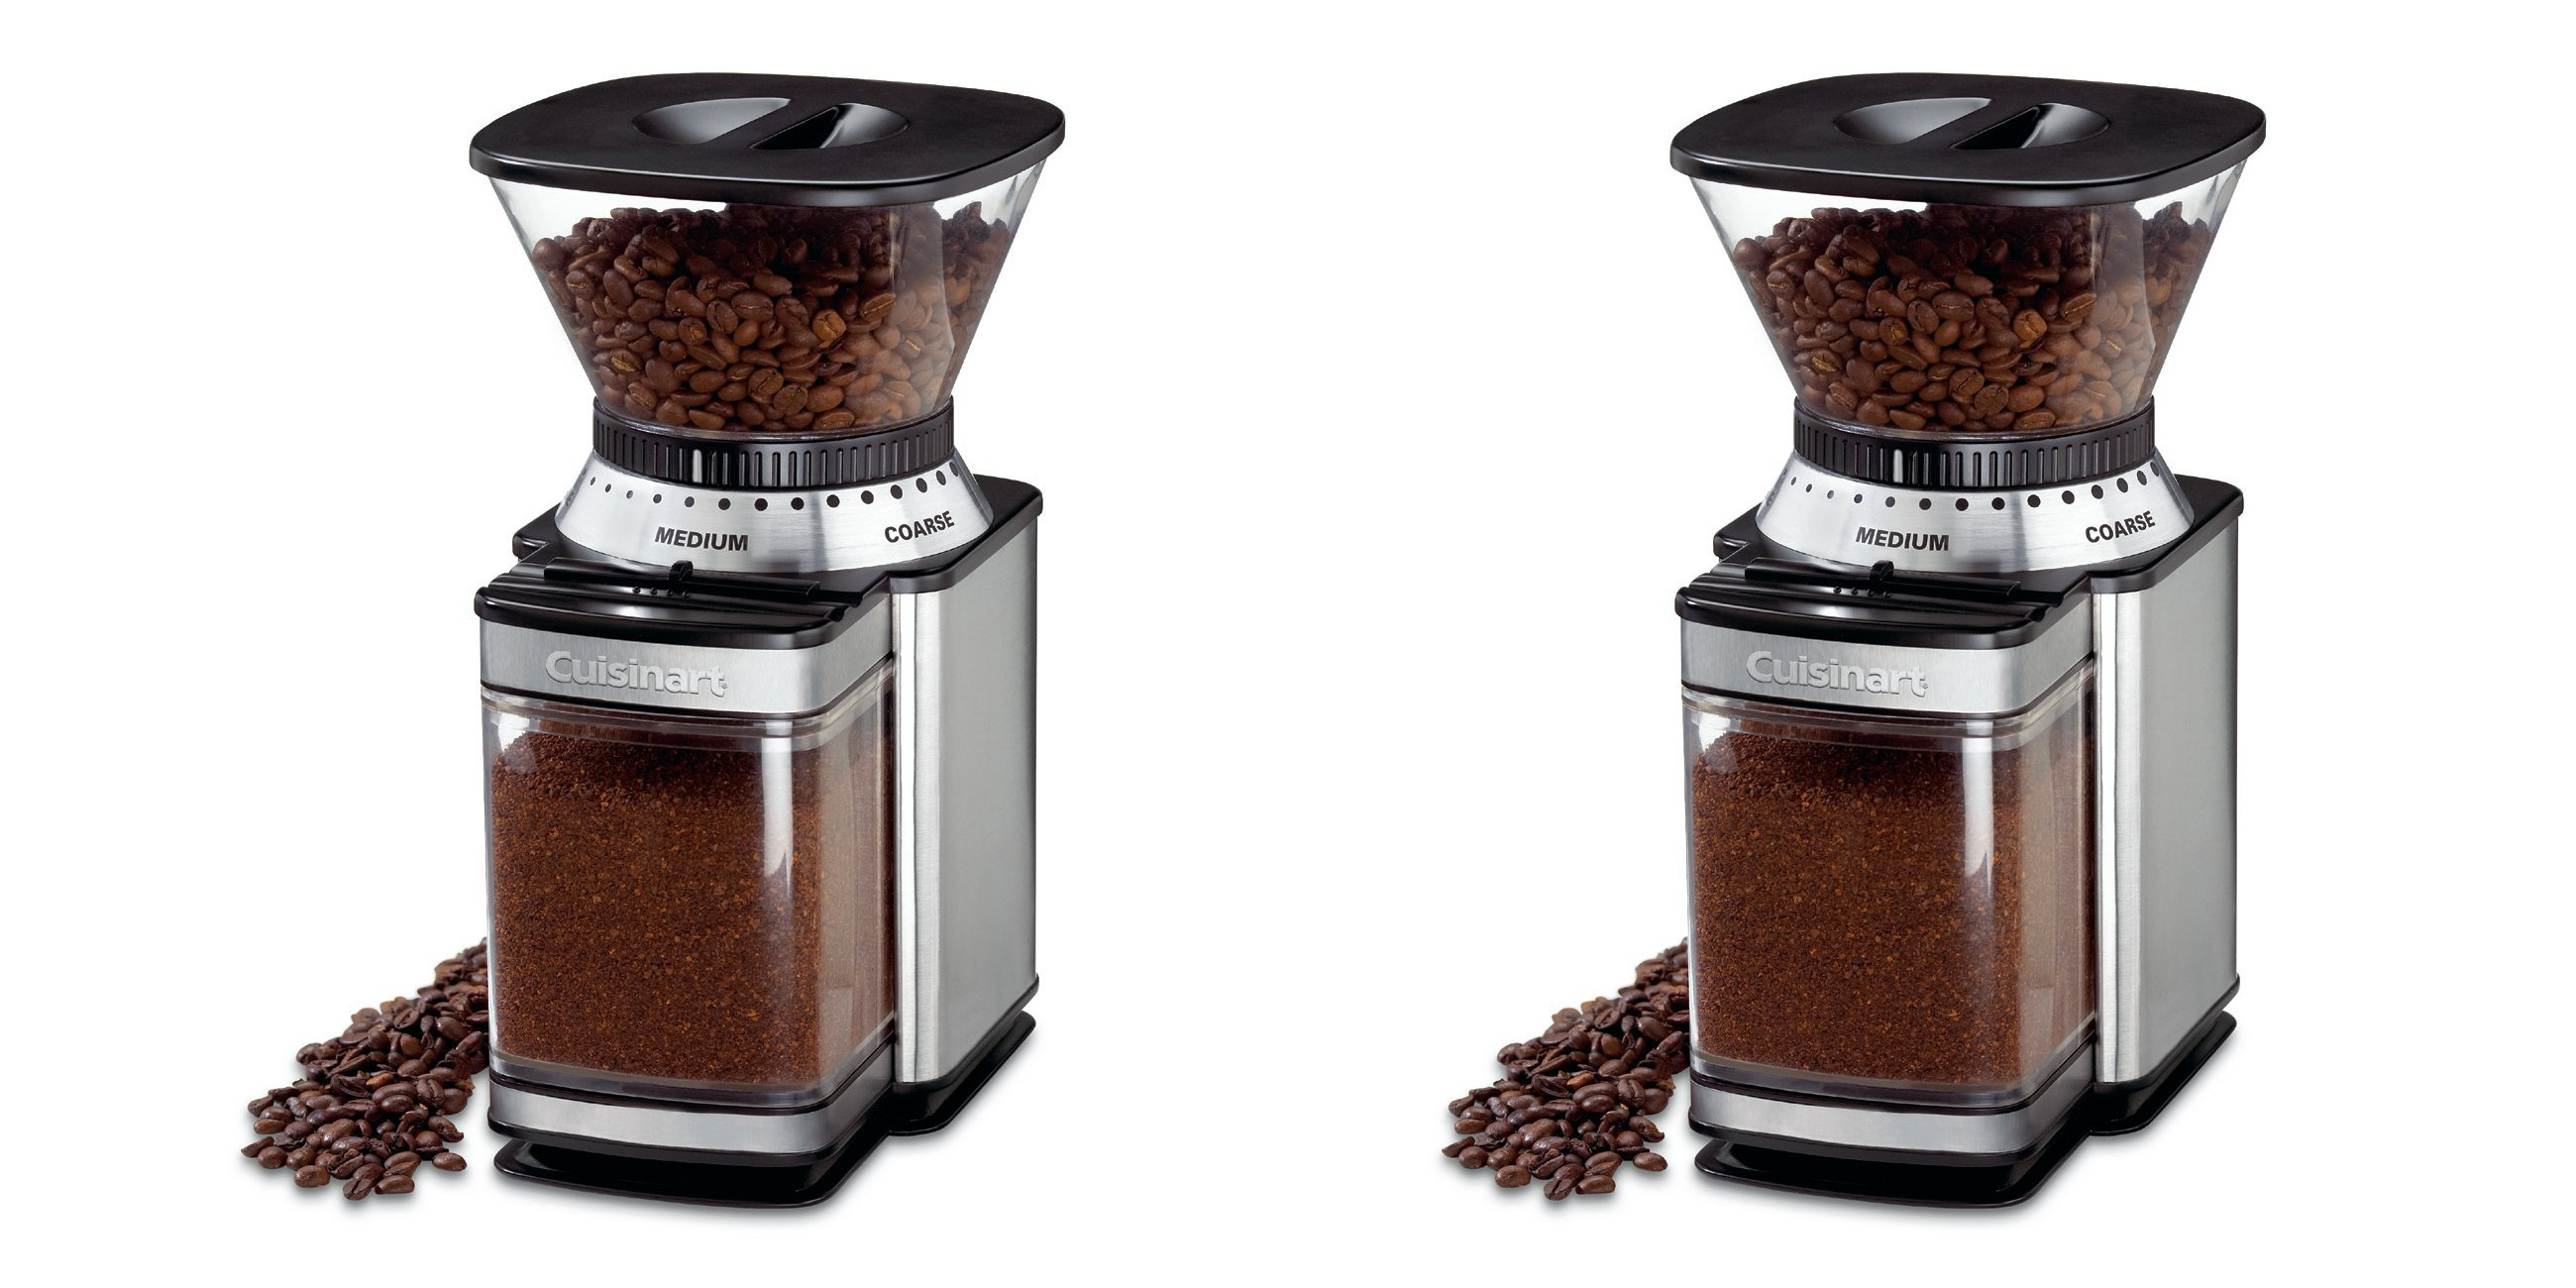 Grind your own fresh coffee w/ Cuisinart's Auto Burr Mill for $37 (Reg. $50)